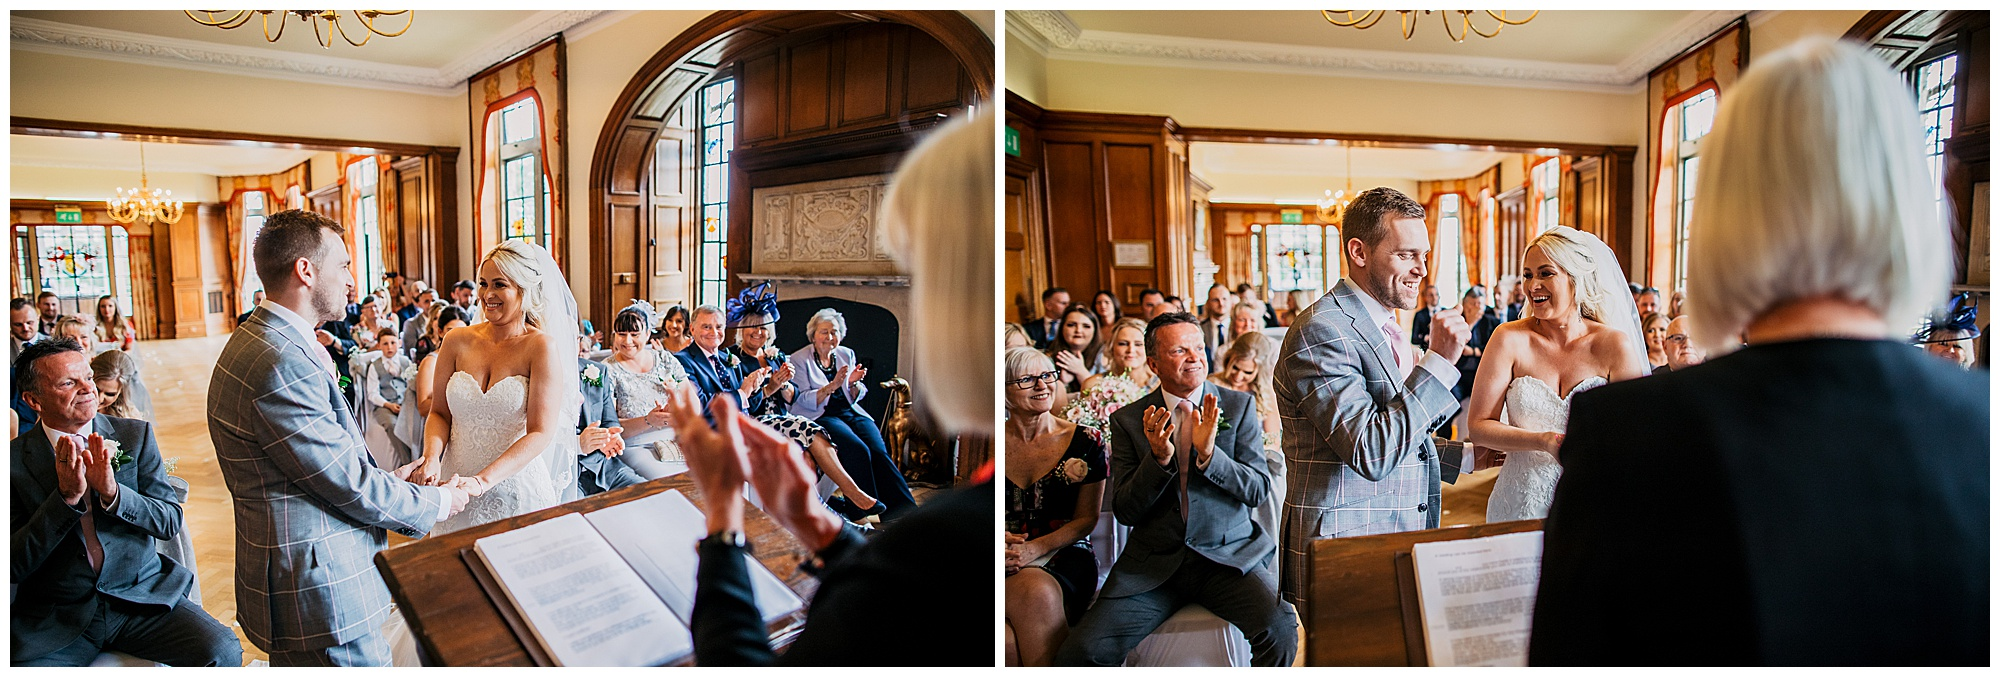 wedding vows at pennyhill park and spa